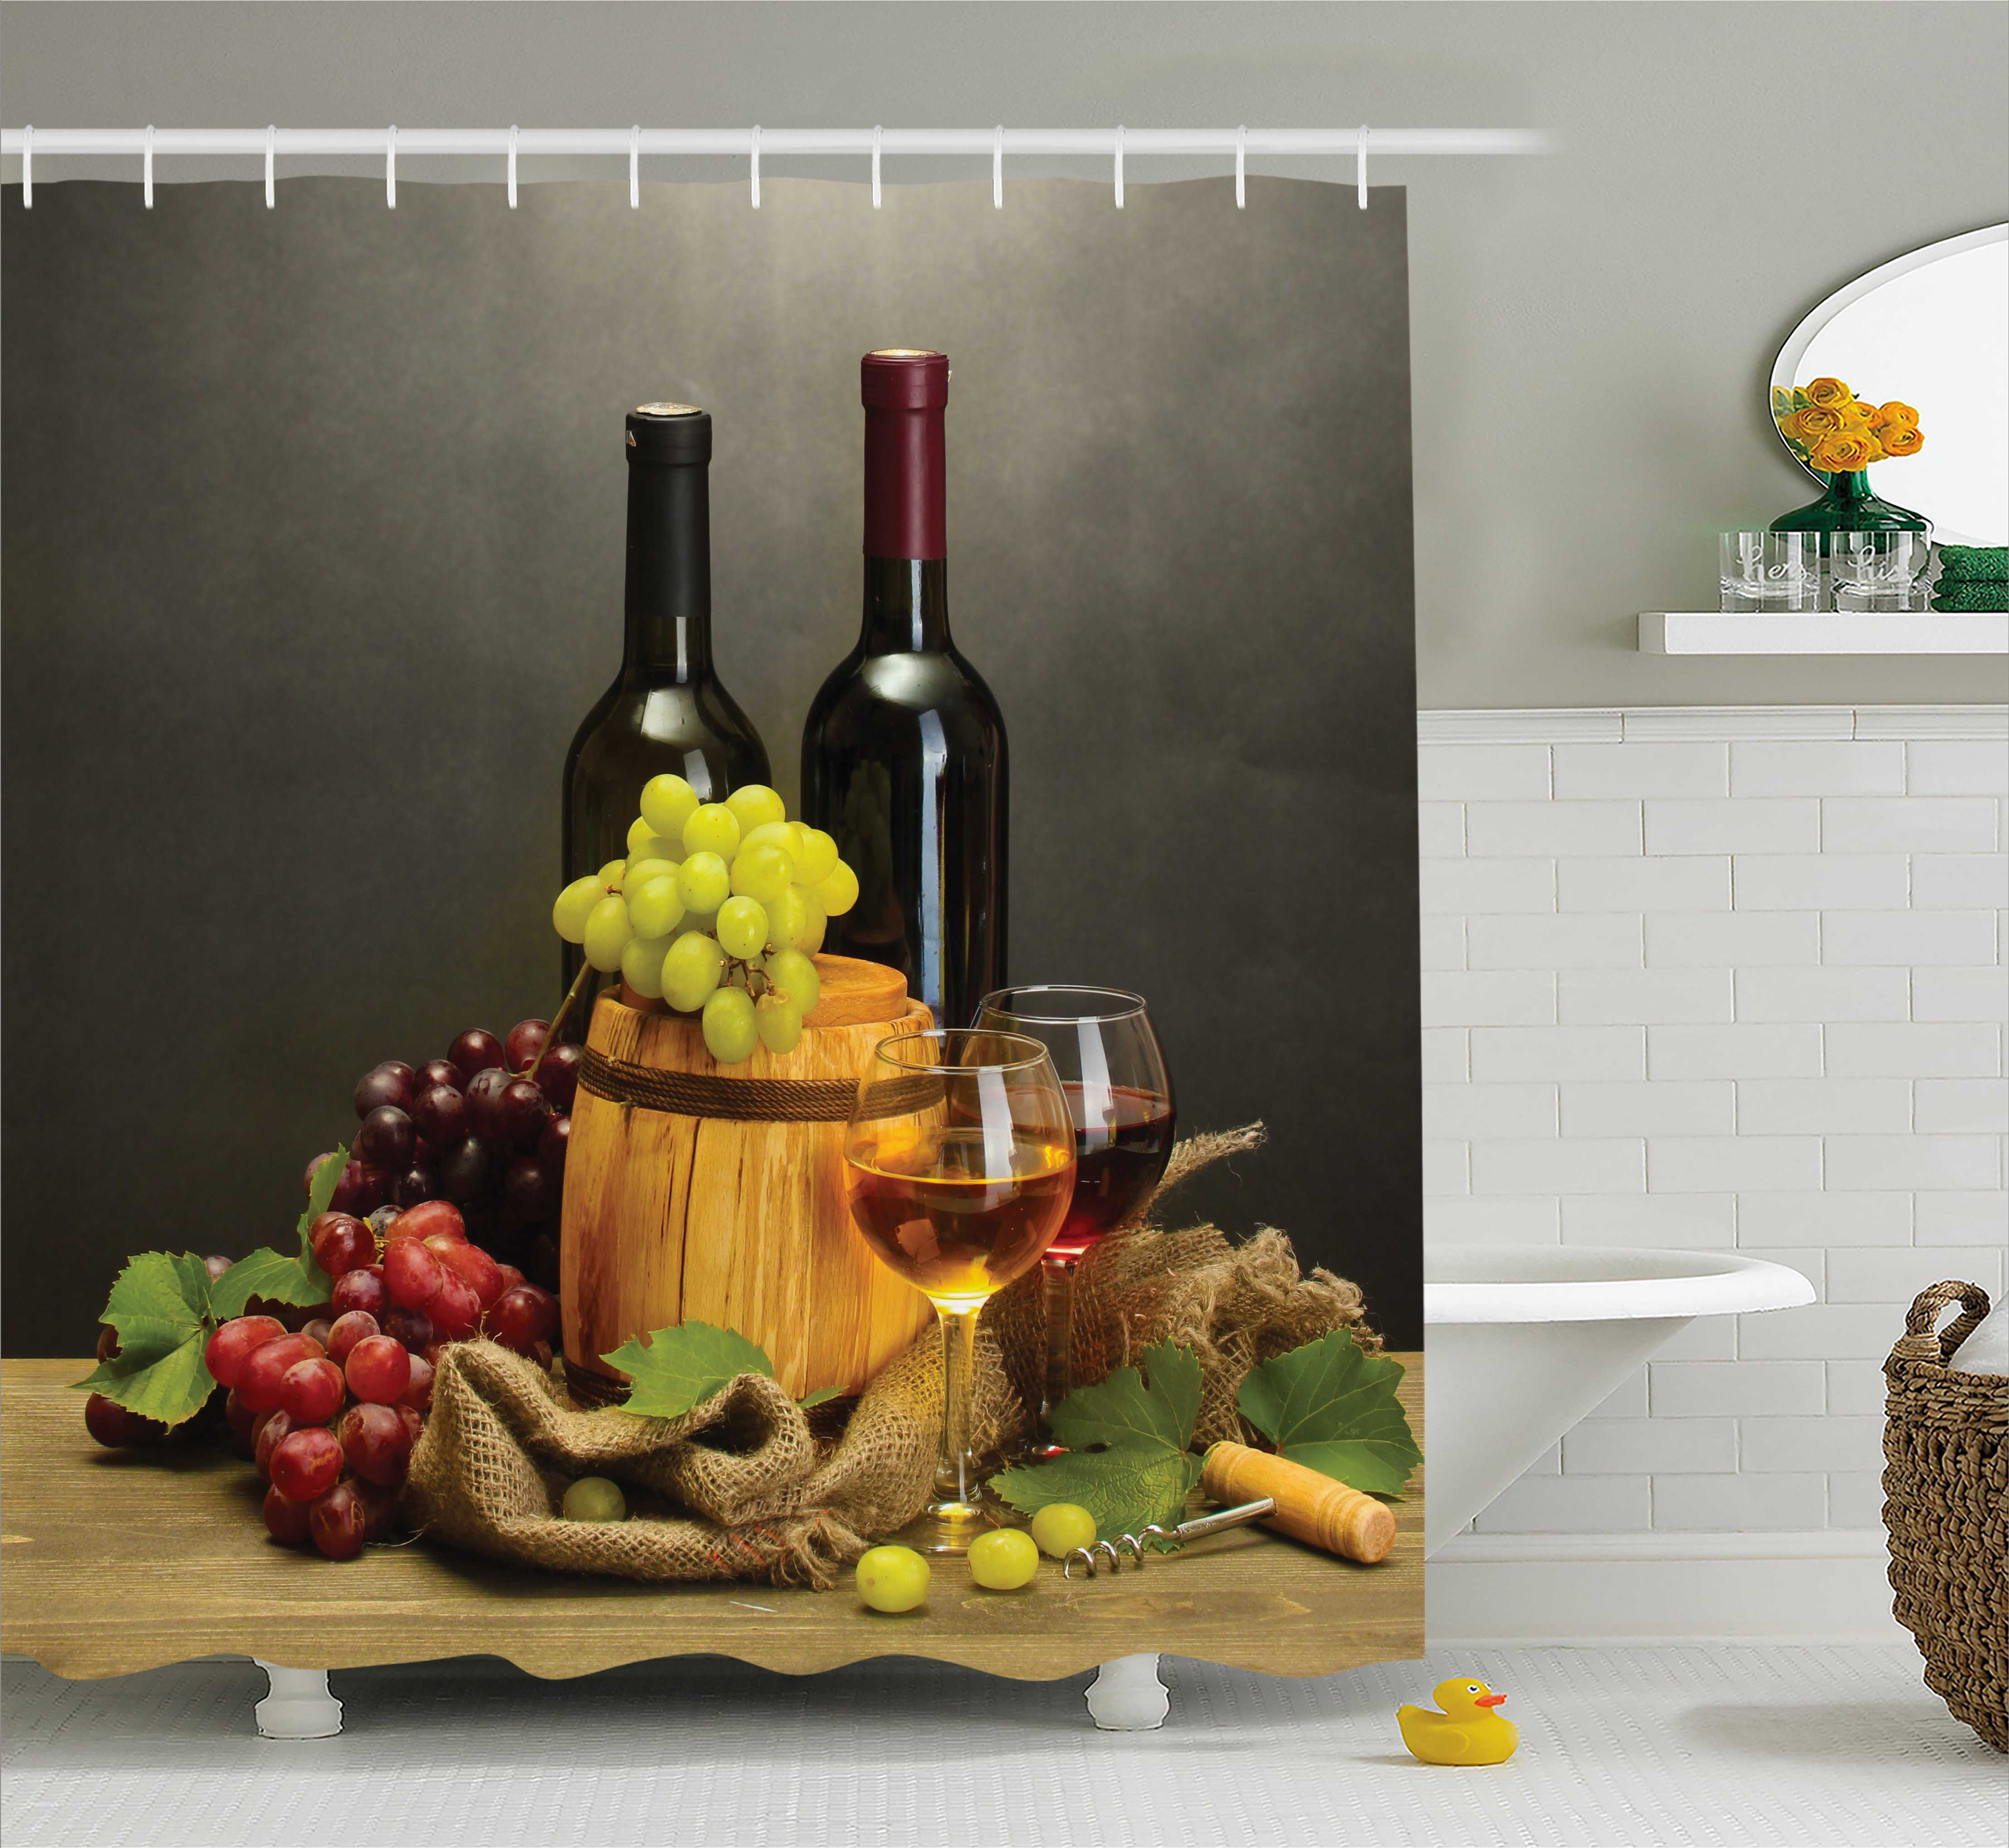 Ordinaire Wine Decor Shower Curtain Set, Barrel, Bottles And Glasses Of Wine And Ripe  Grapes On Wooden Table Decorative Picture, Bathroom Decor, Multi, By  Ambesonne ...